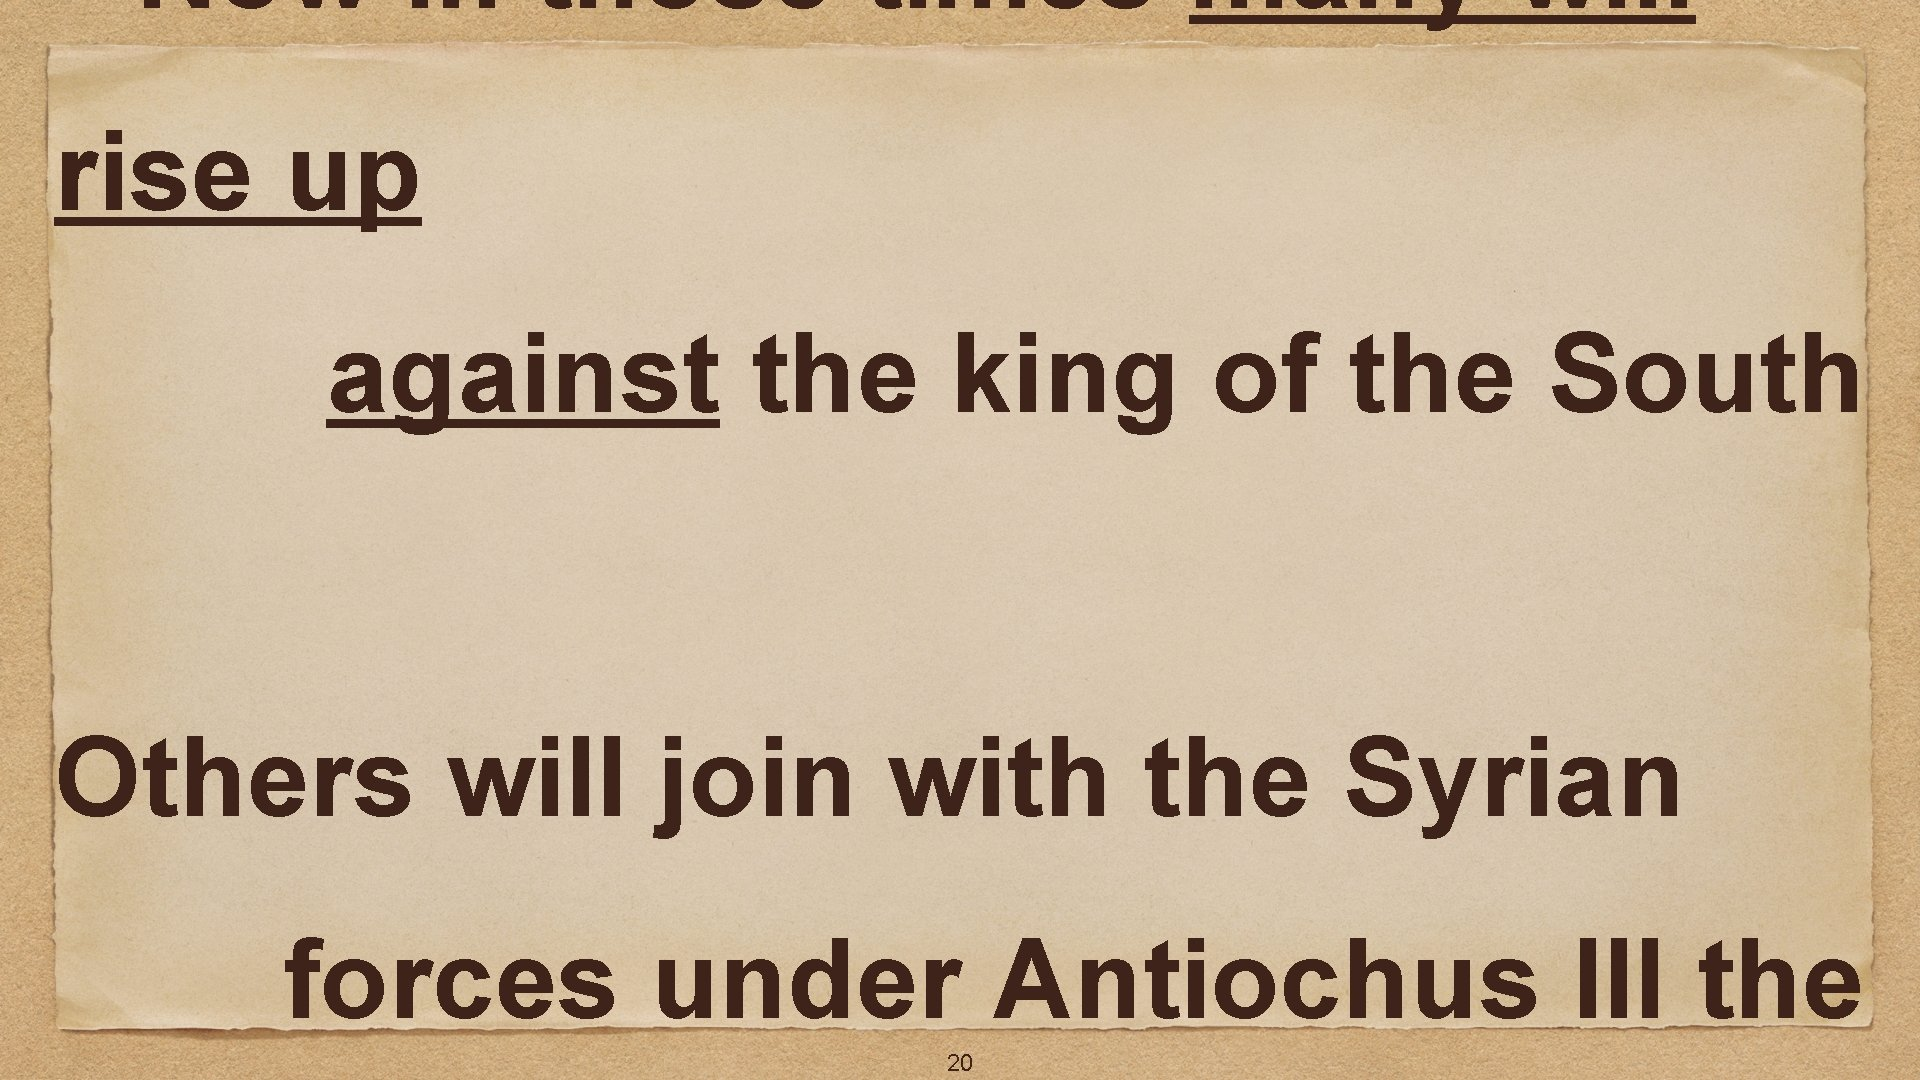 Now in those times many will rise up against the king of the South